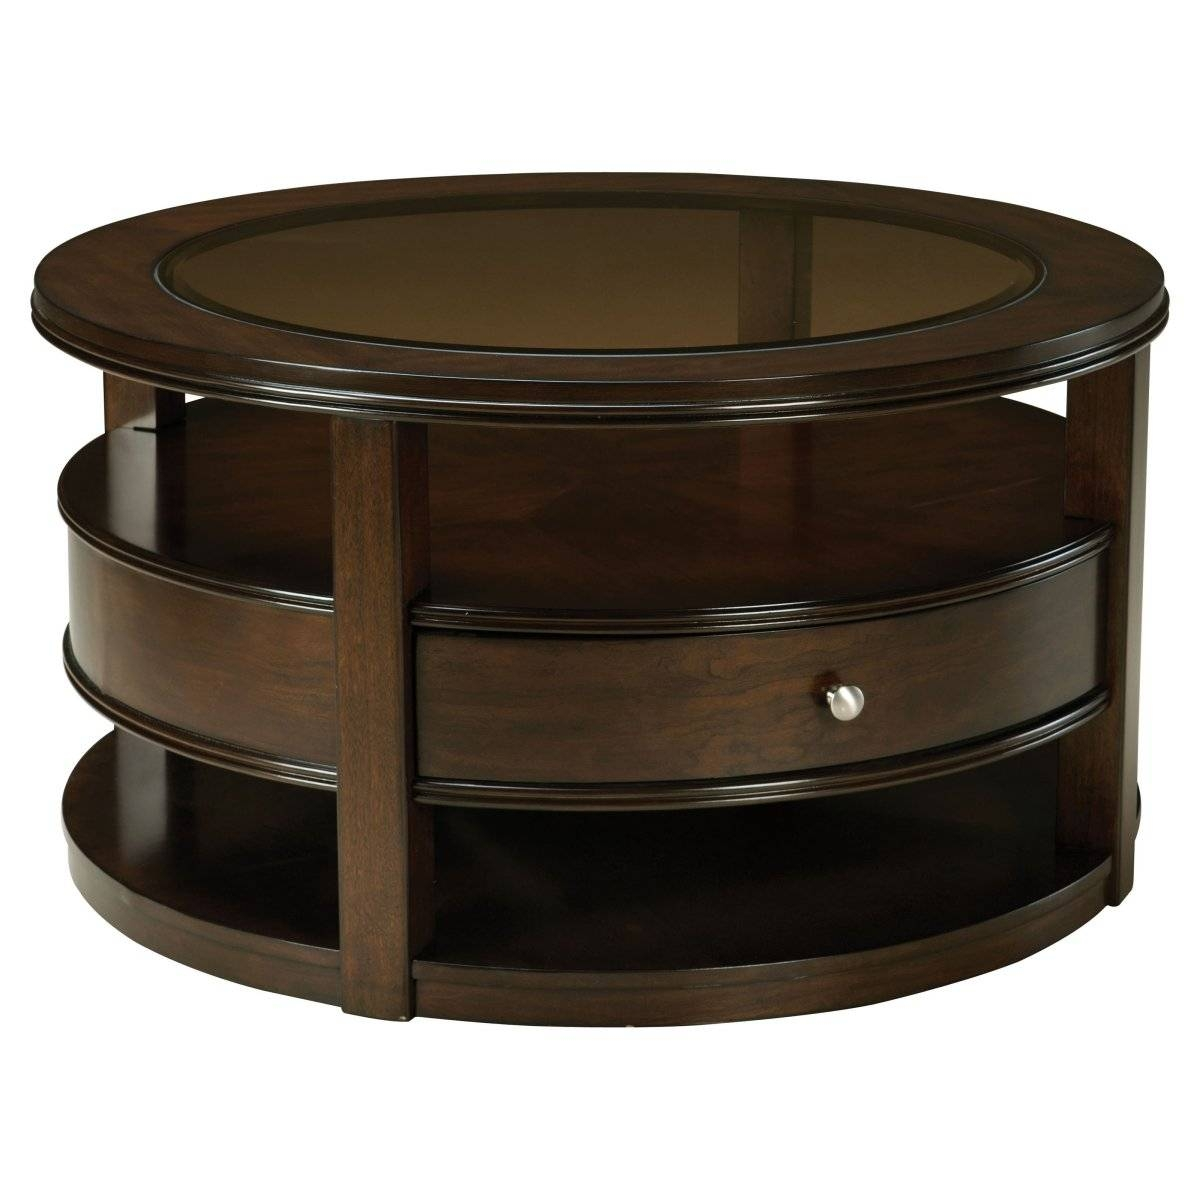 Awesome Round Coffee Tables With Storage | Homesfeed within Round Coffee Tables With Storage (Image 2 of 30)